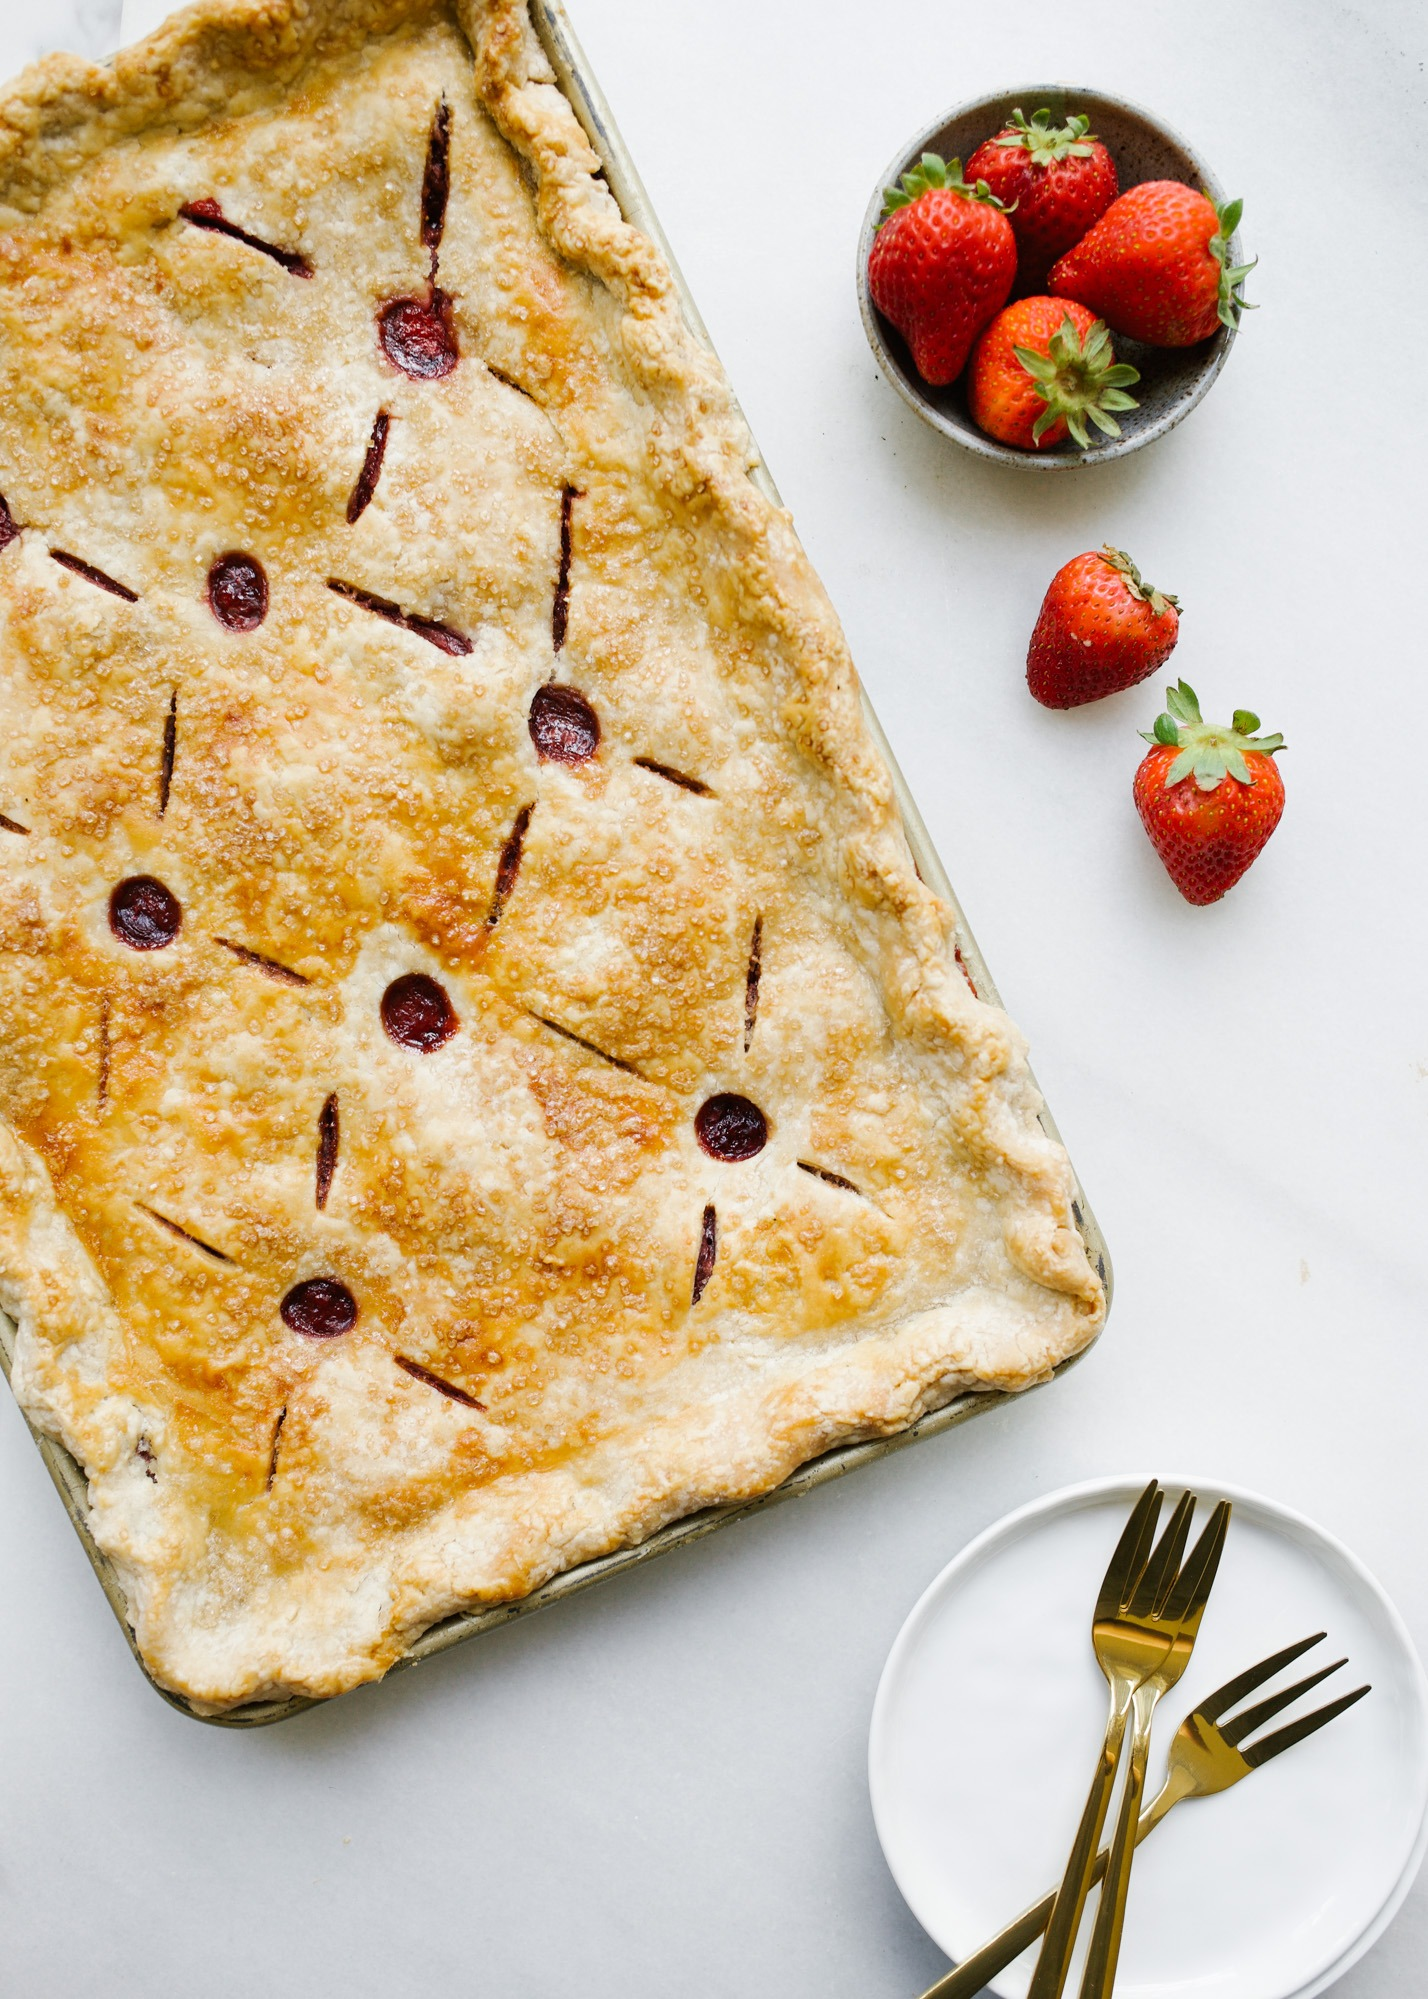 Strawberry Slab Pie by Wood and Spoon. This is a make-ahead feed-a-crowd kind of recipe featuring fresh summer fruit, vanilla, and loads of flaky butter pie crust. This pie ends up being berry pie bars that are easy to serve large groups and almost require no plate or fork. Learn how to make large batch pie with simple homemade filling on thewoodandspoon.com by Kate Wood.